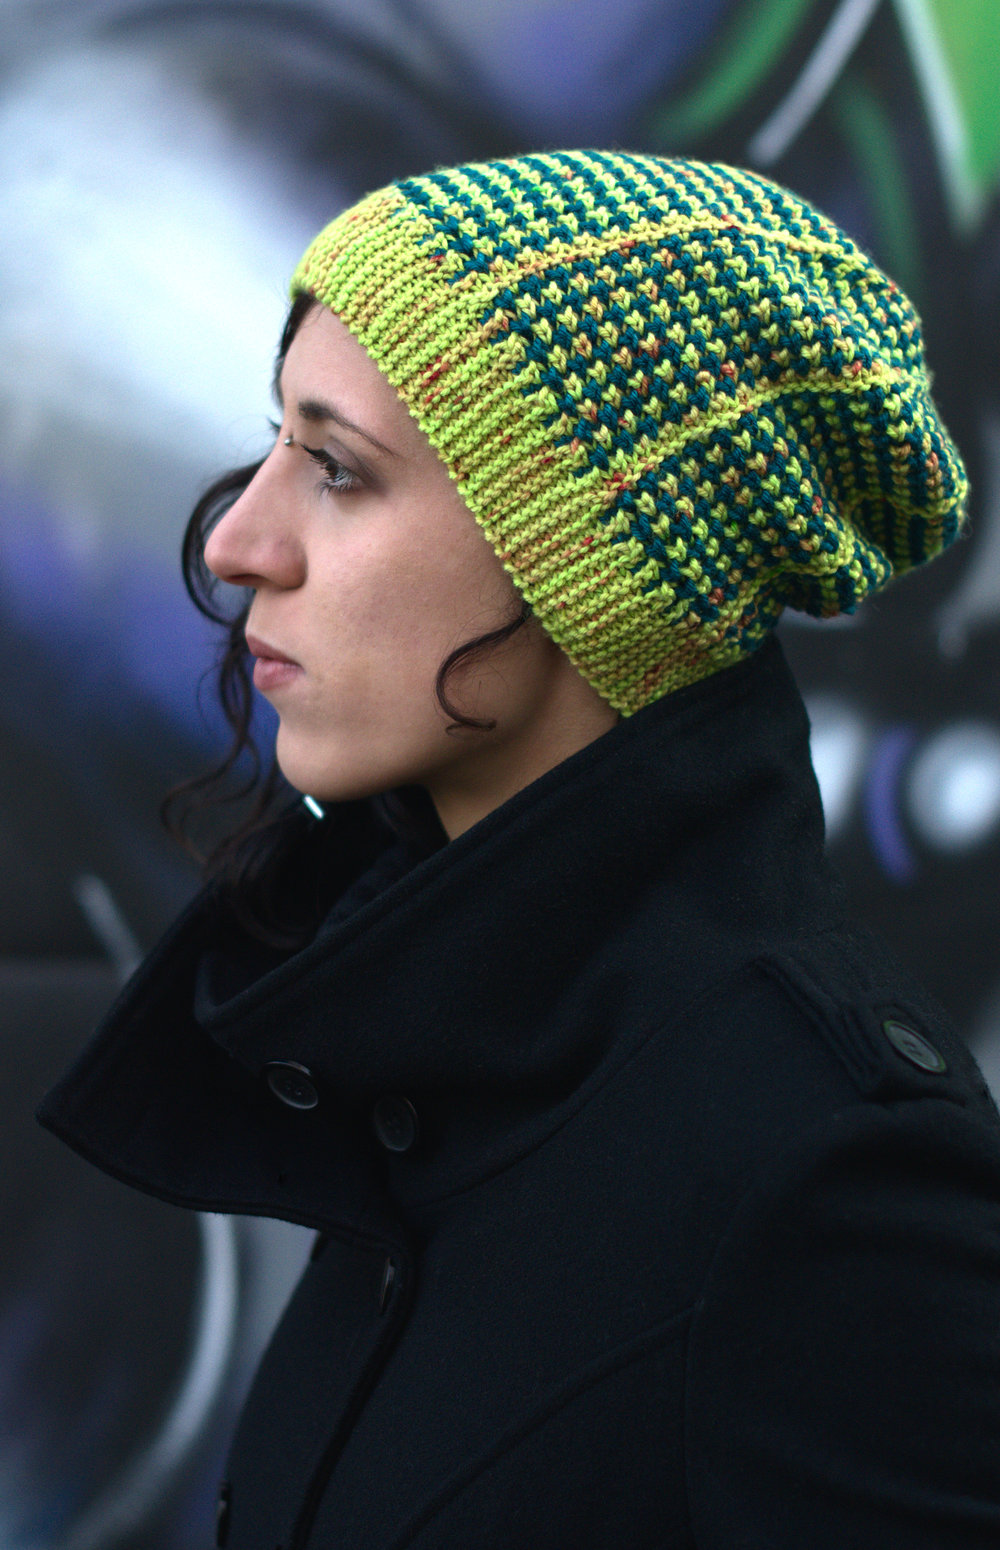 Kourserb sideways knit slouchy Hat hand knitting pattern for hand-dyed DK yarns